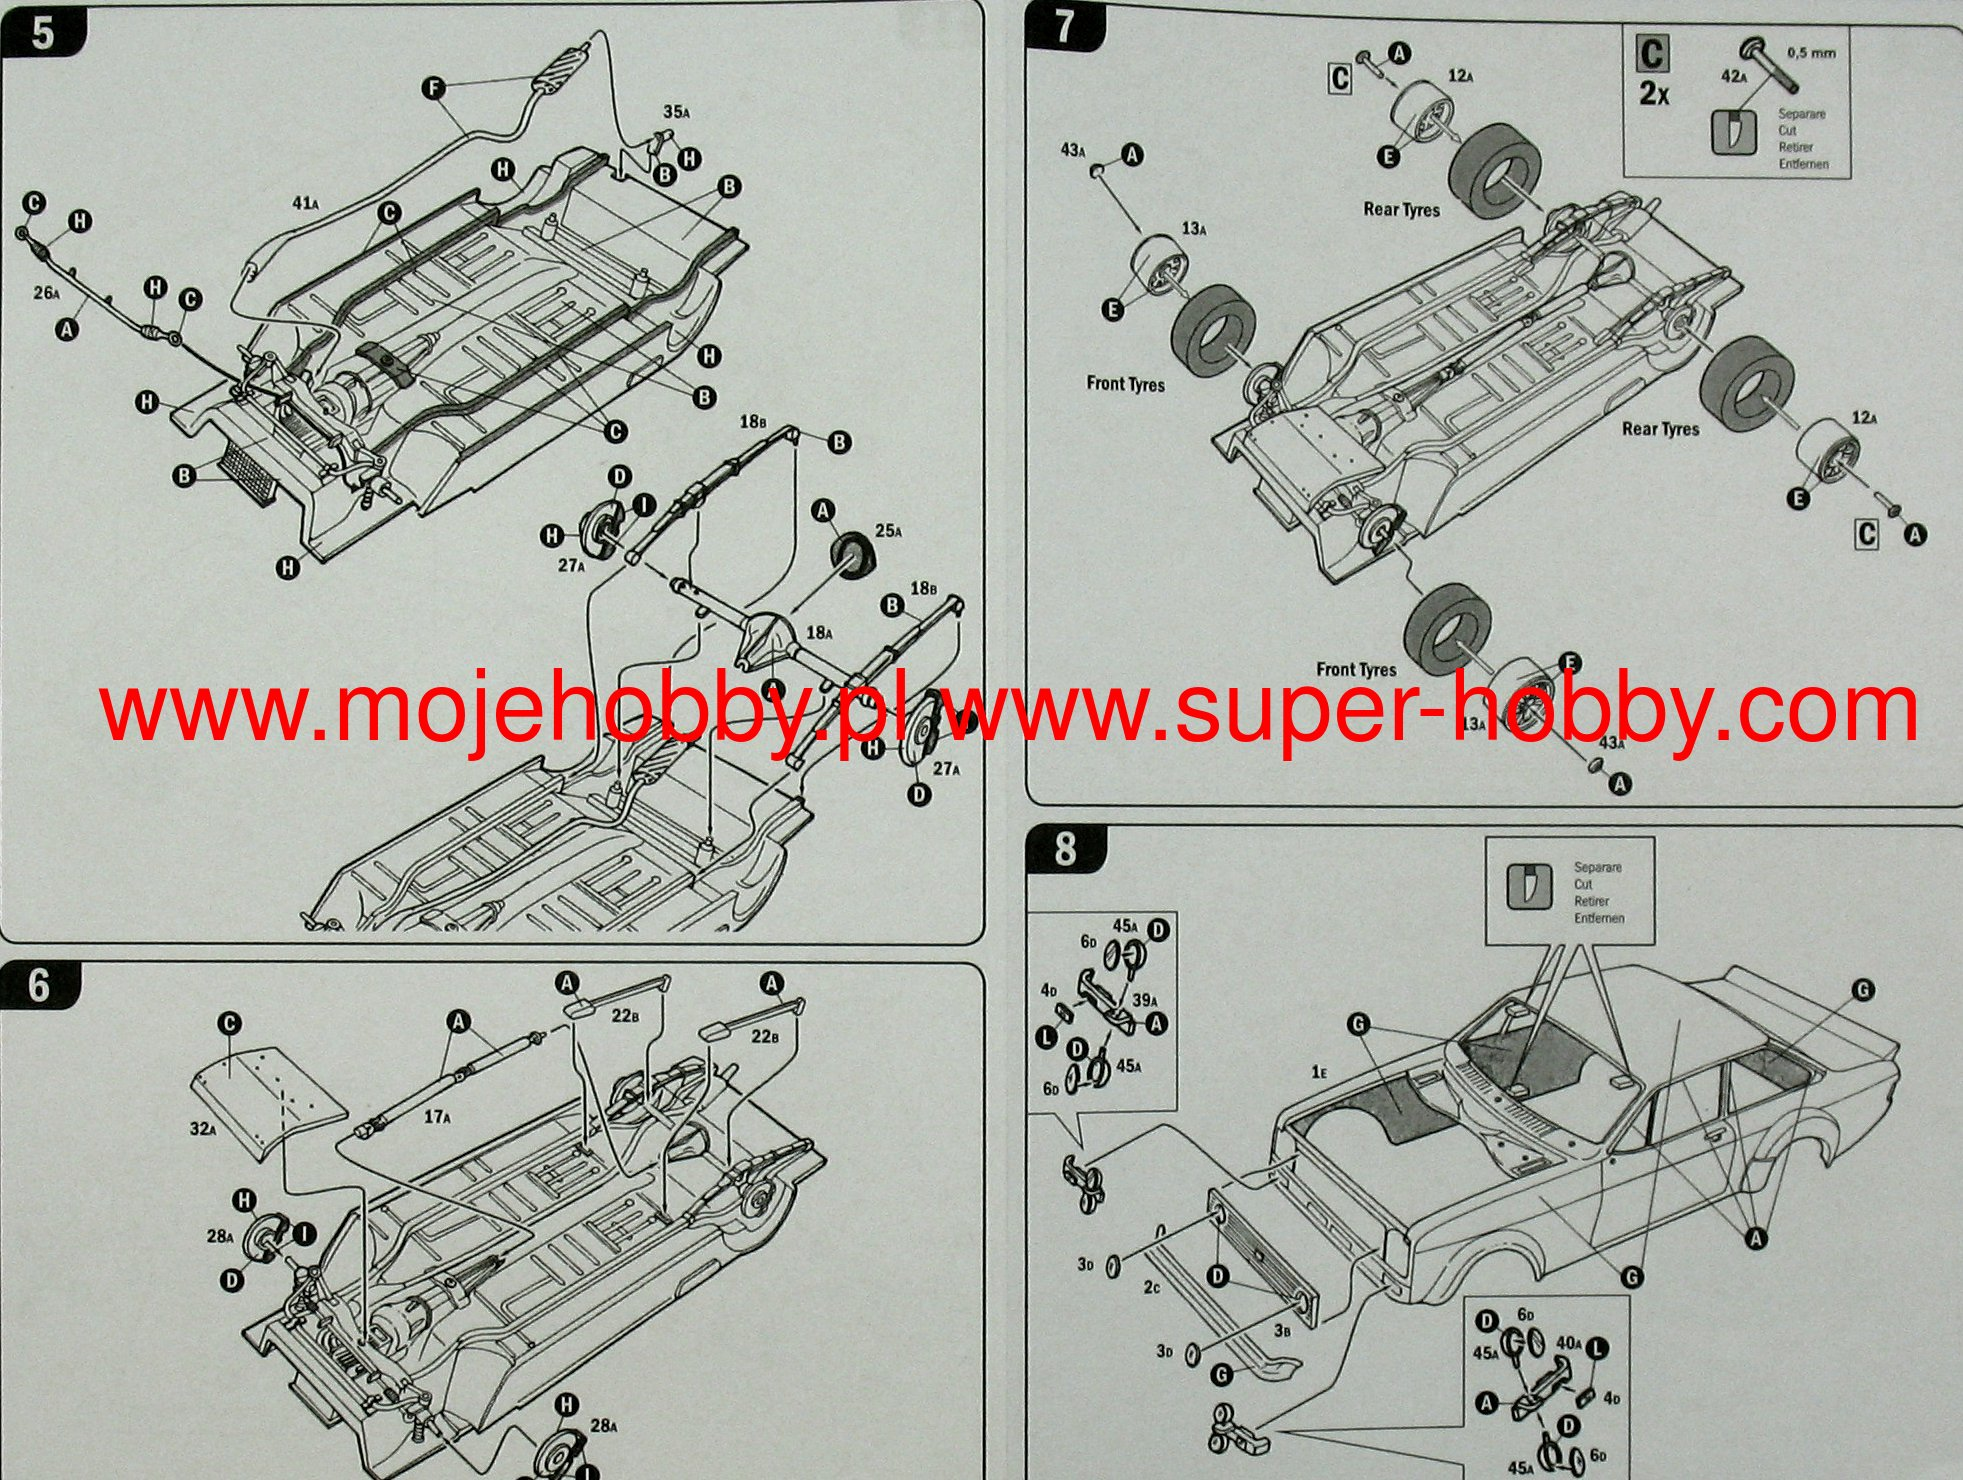 Ford Escort Mk2 Wiring Diagram Ford Technical Information System